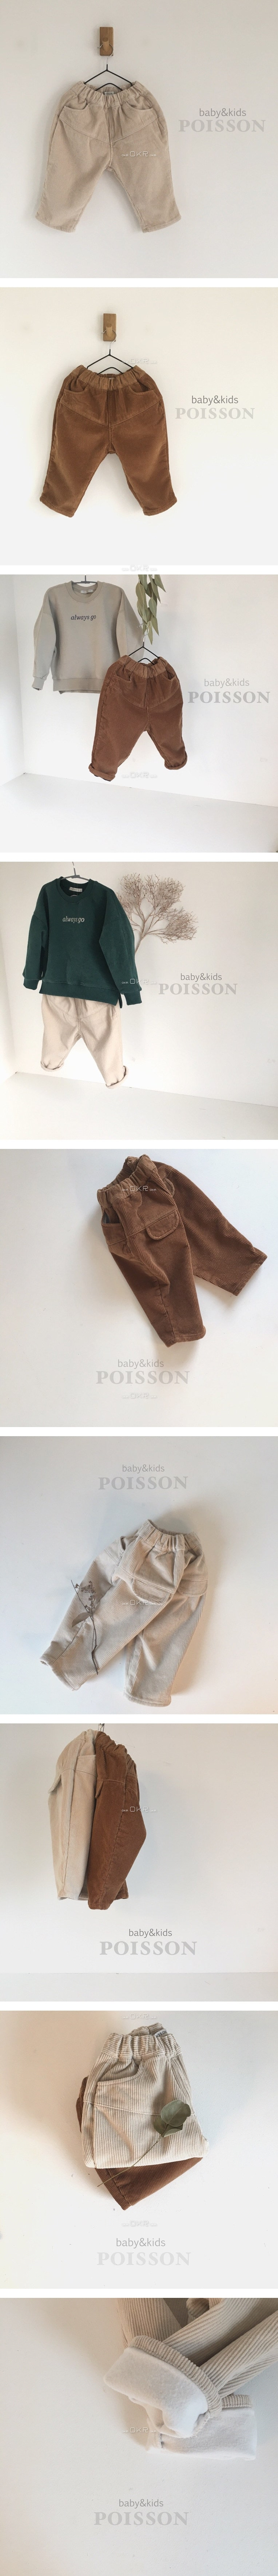 POISSON - Korean Children Fashion - #Kfashion4kids - Made Pants